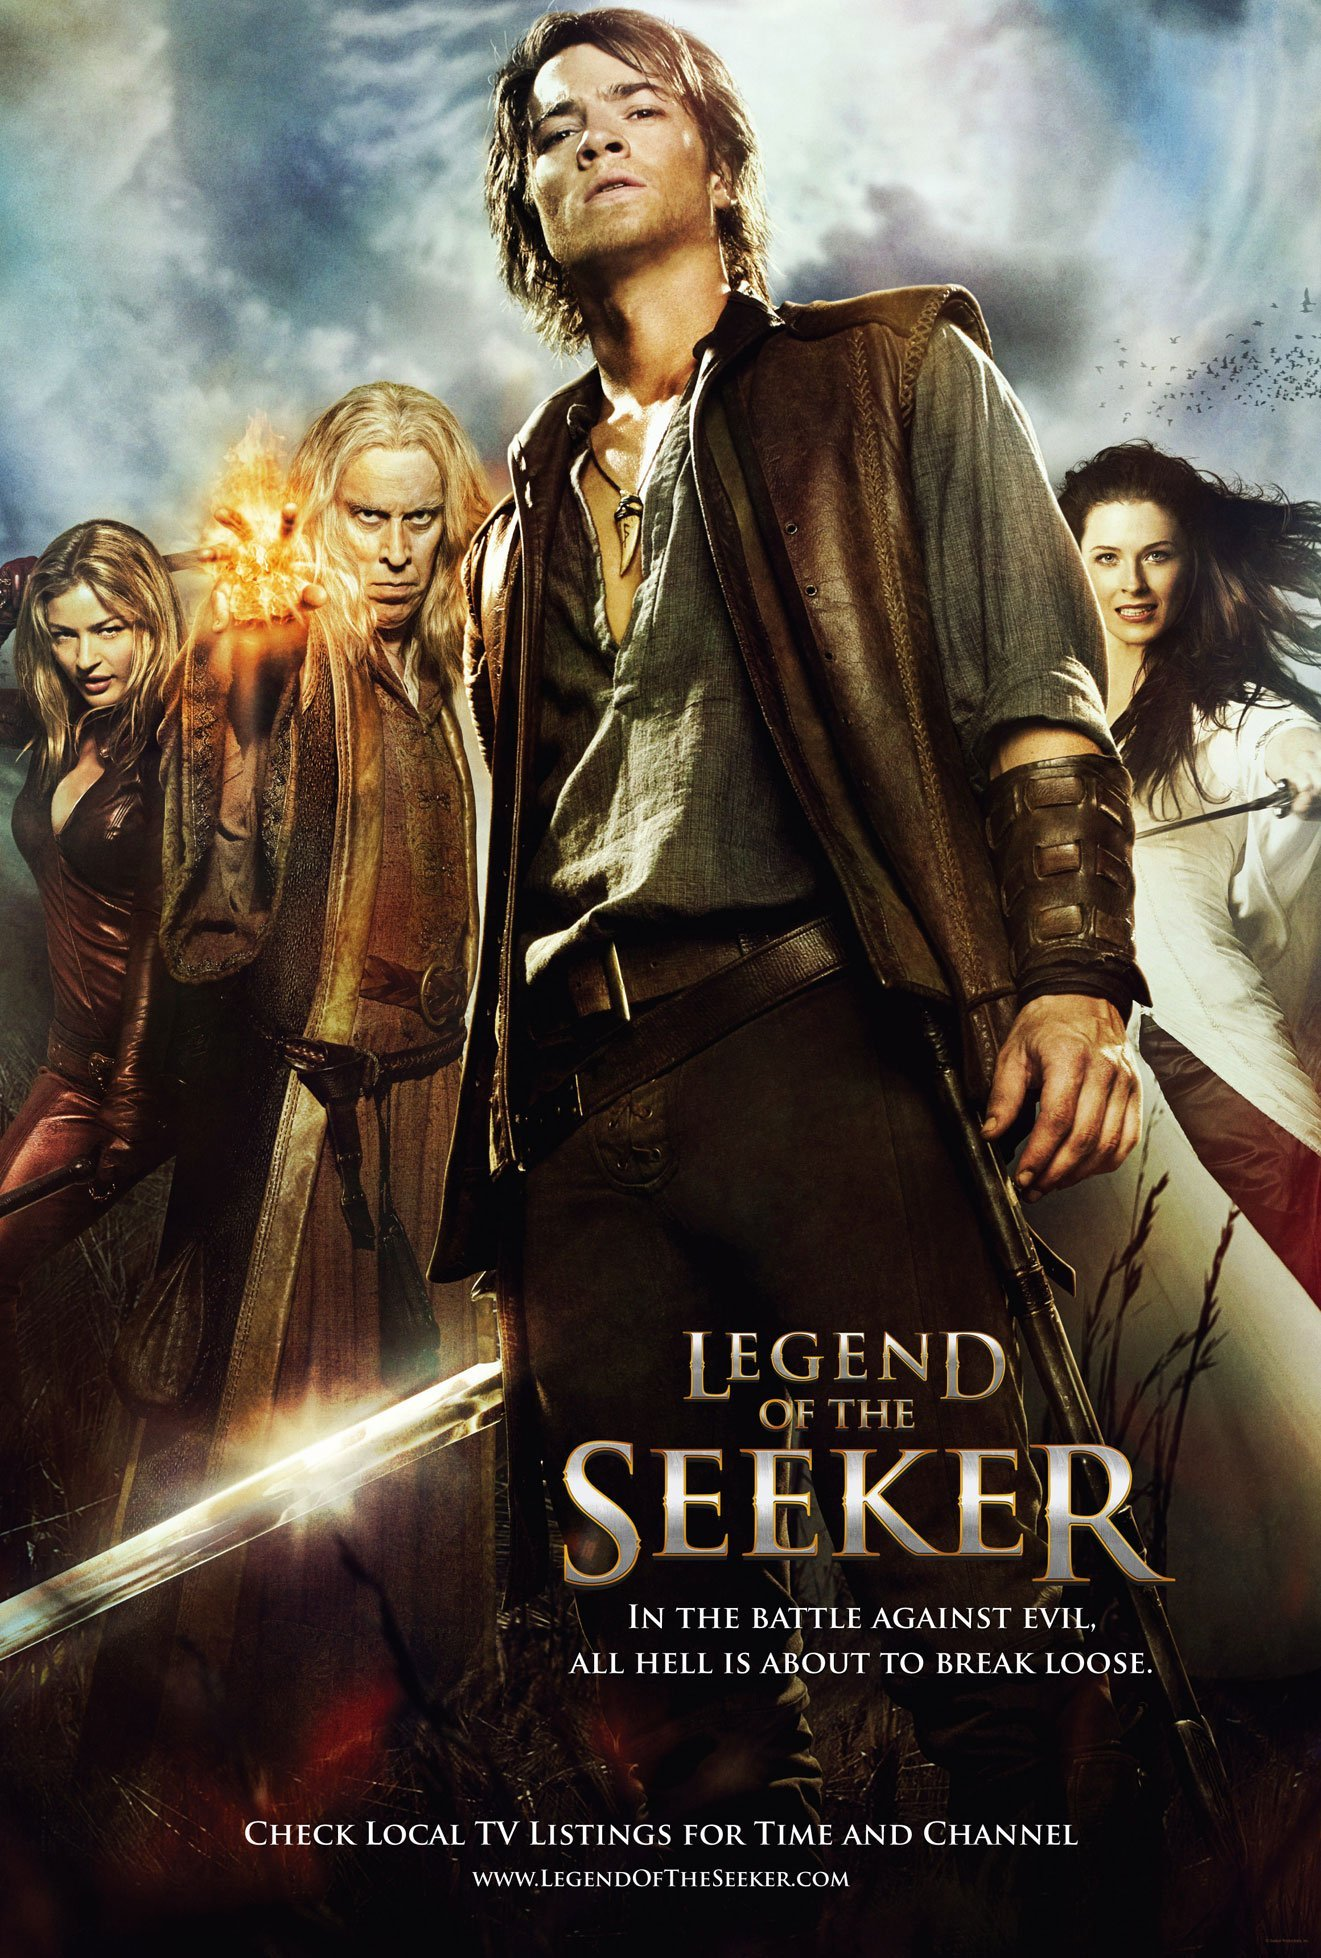 Legend of the Seeker: Main Characters